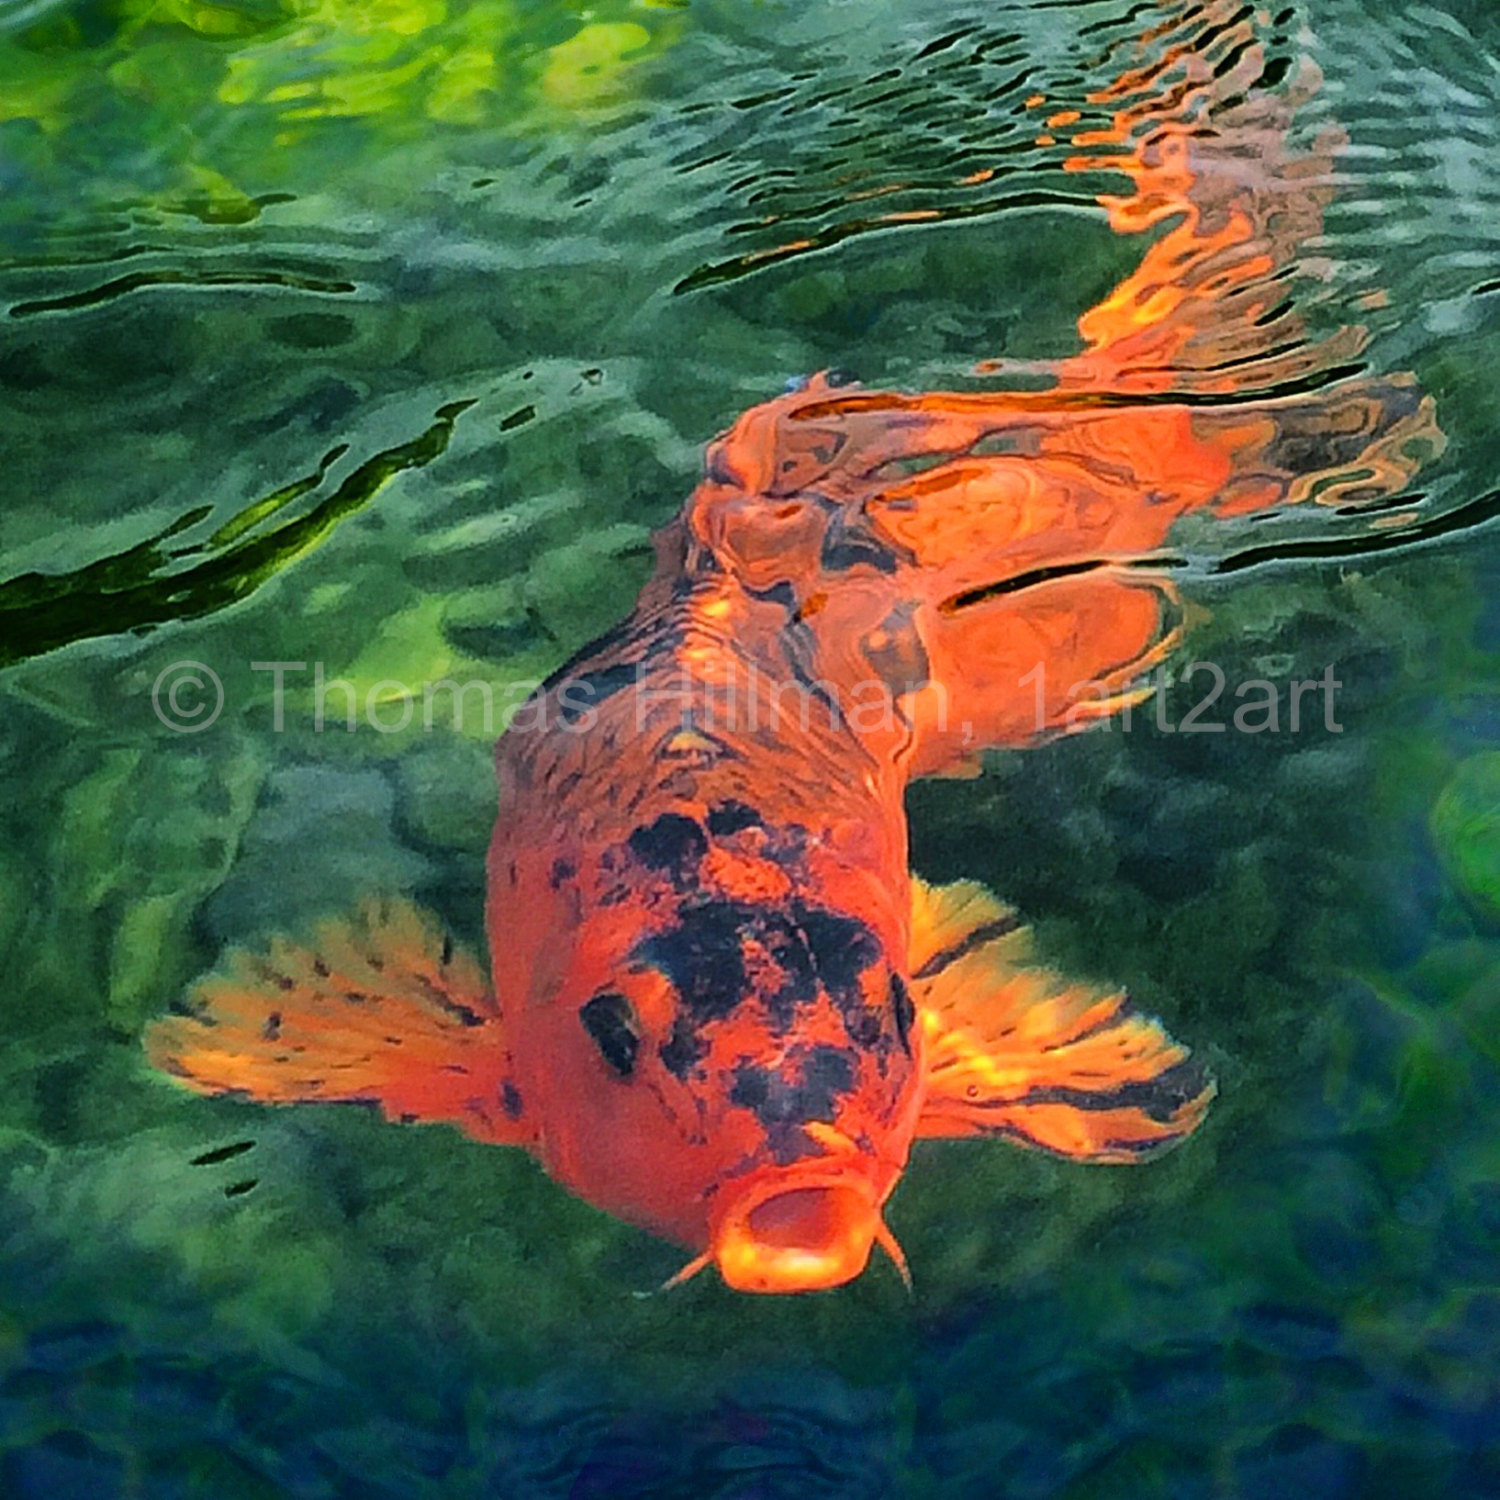 Koi fish king of the pond high quality gilcee canvas print for Koi pond water quality